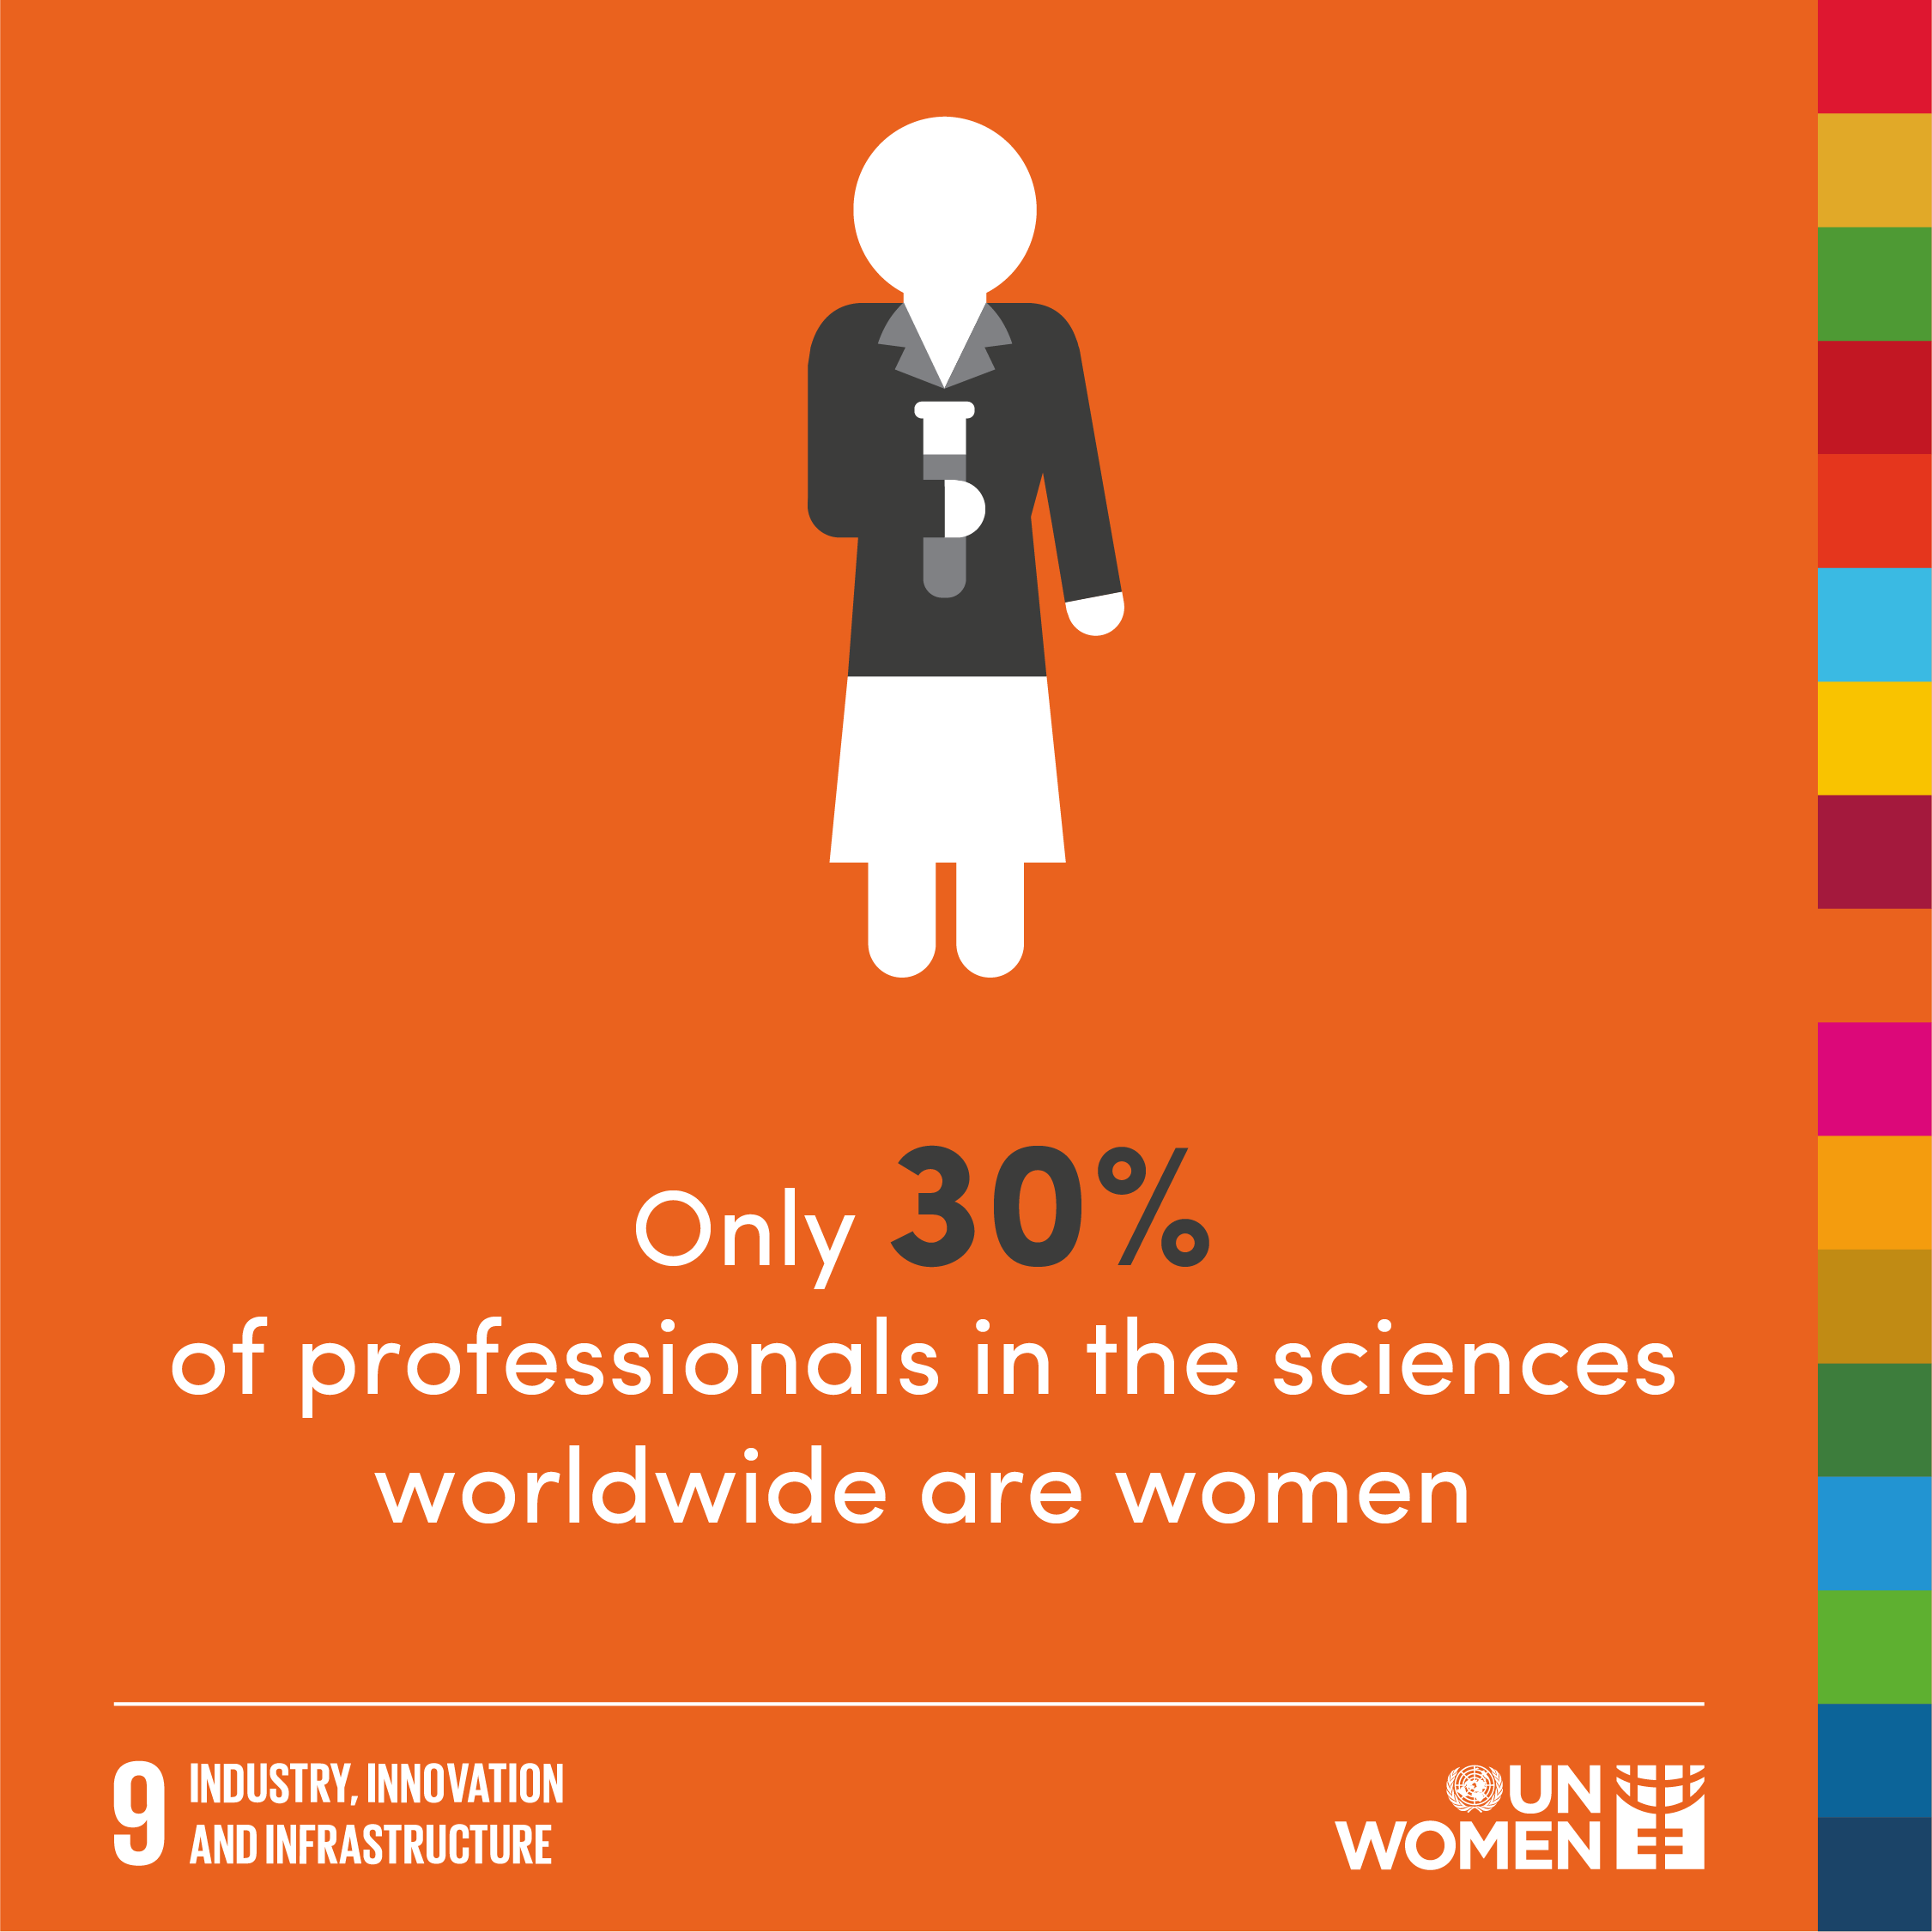 Only 30% of professionals in the sciences worldwide are women